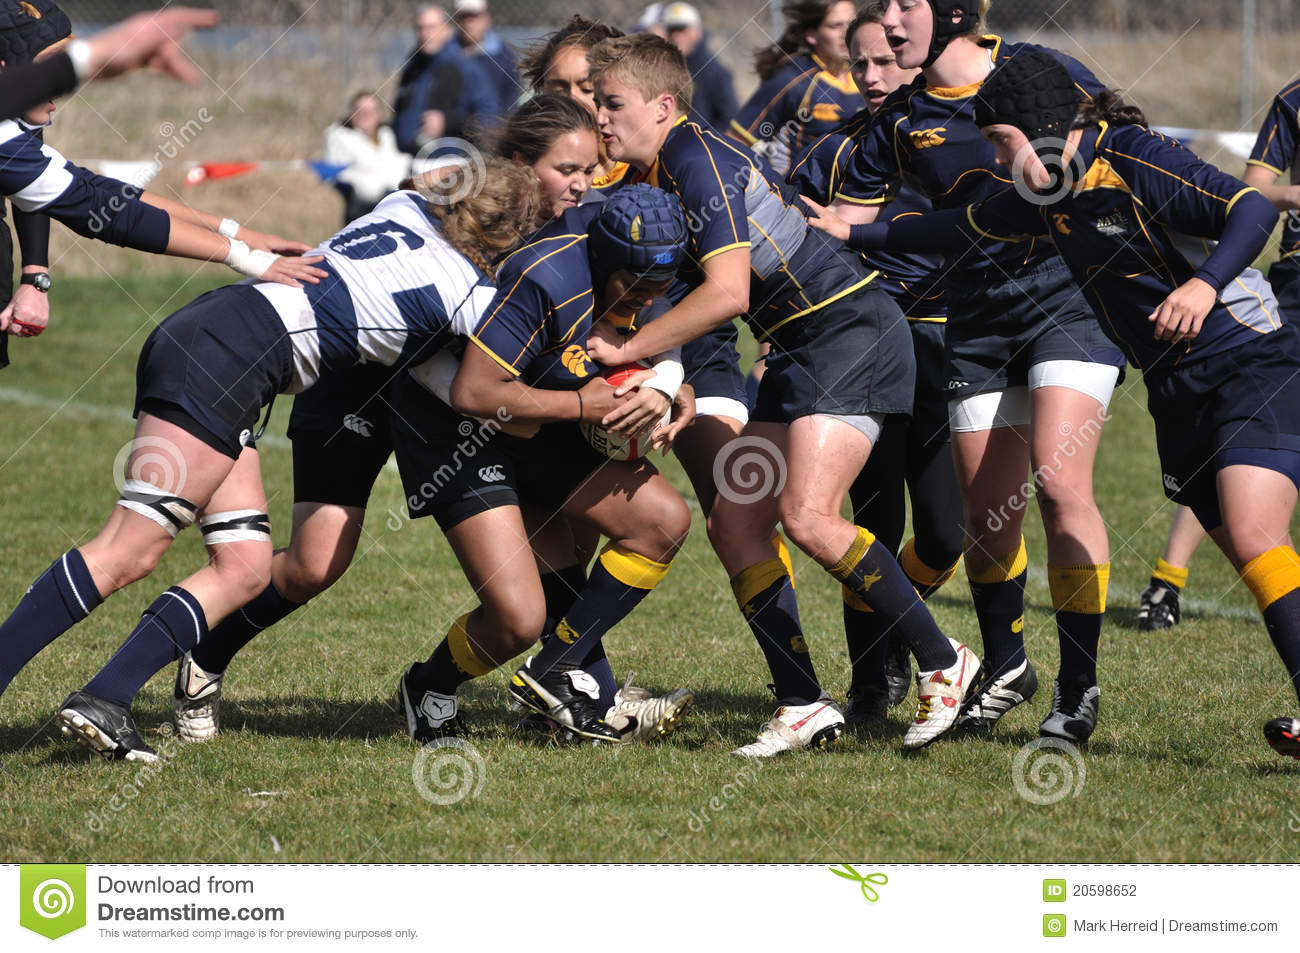 """rugby cougar women """"(gray) had scholarship offers from other schools, but chose byu to get the best education,"""" said byu rugby head coach tom waqa, who coached gray through her years on the byu women."""